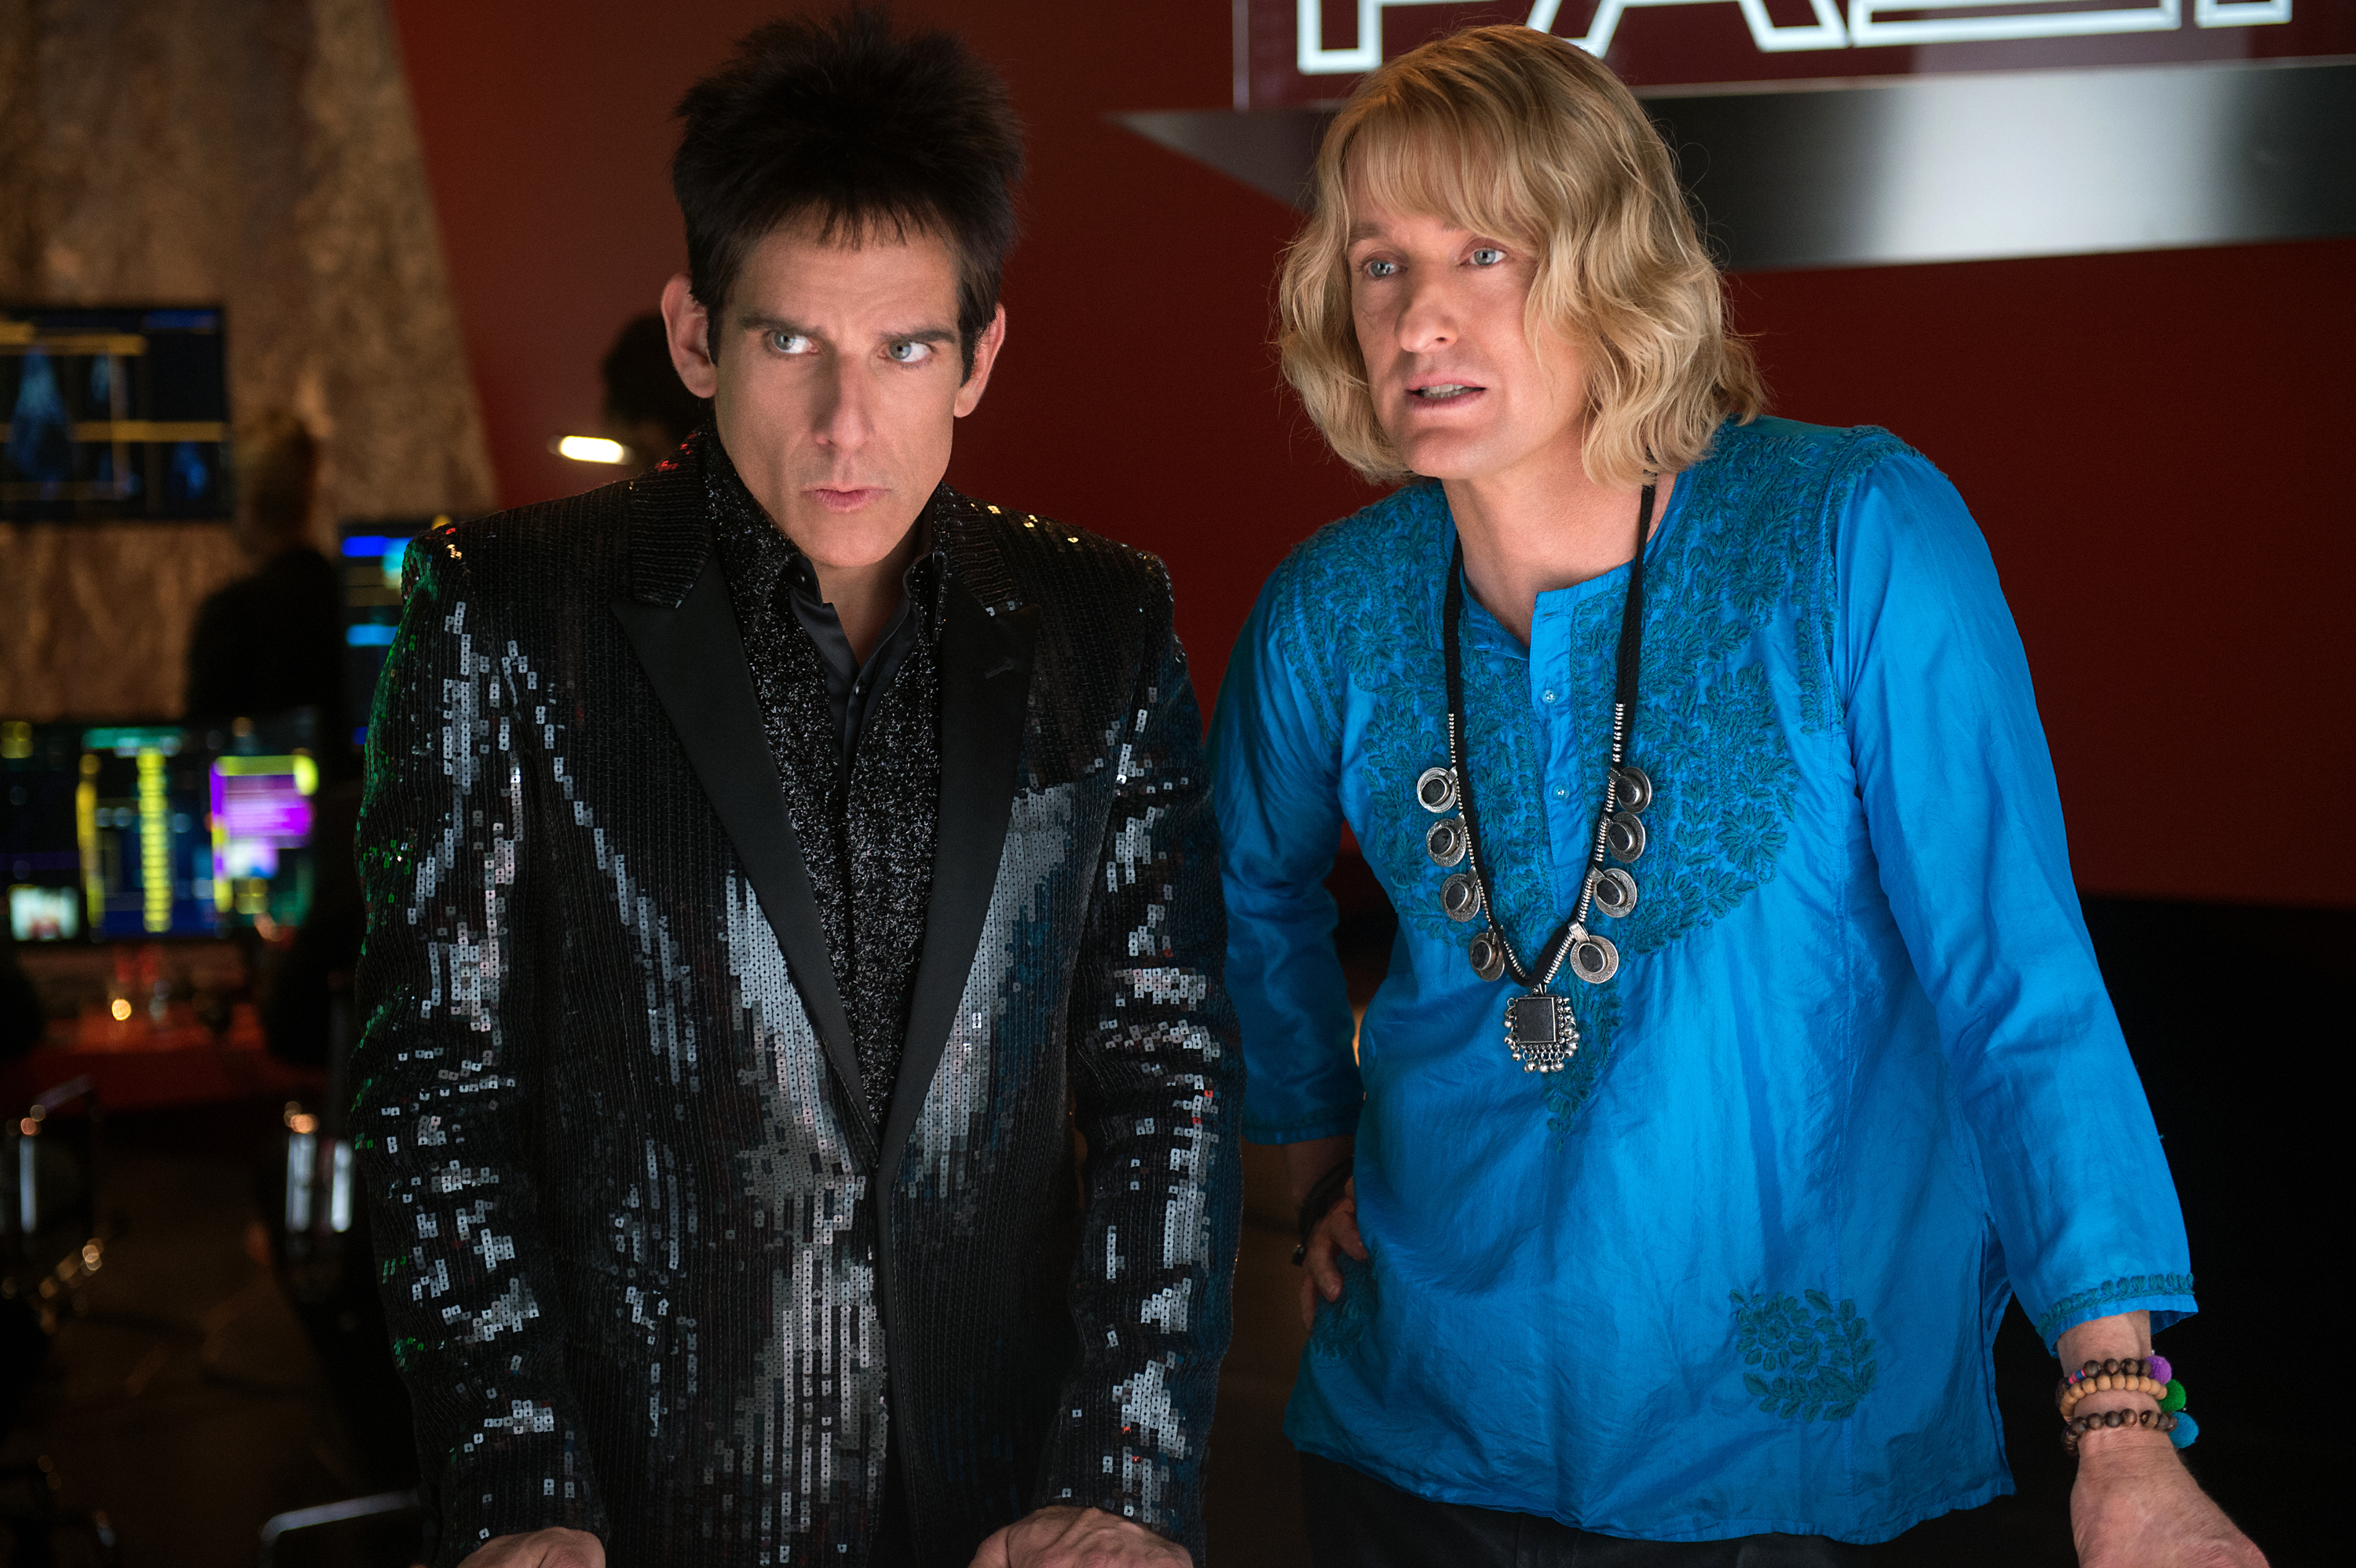 Relax, don't do it: 'Zoolander 2' script had freak gasoline accident